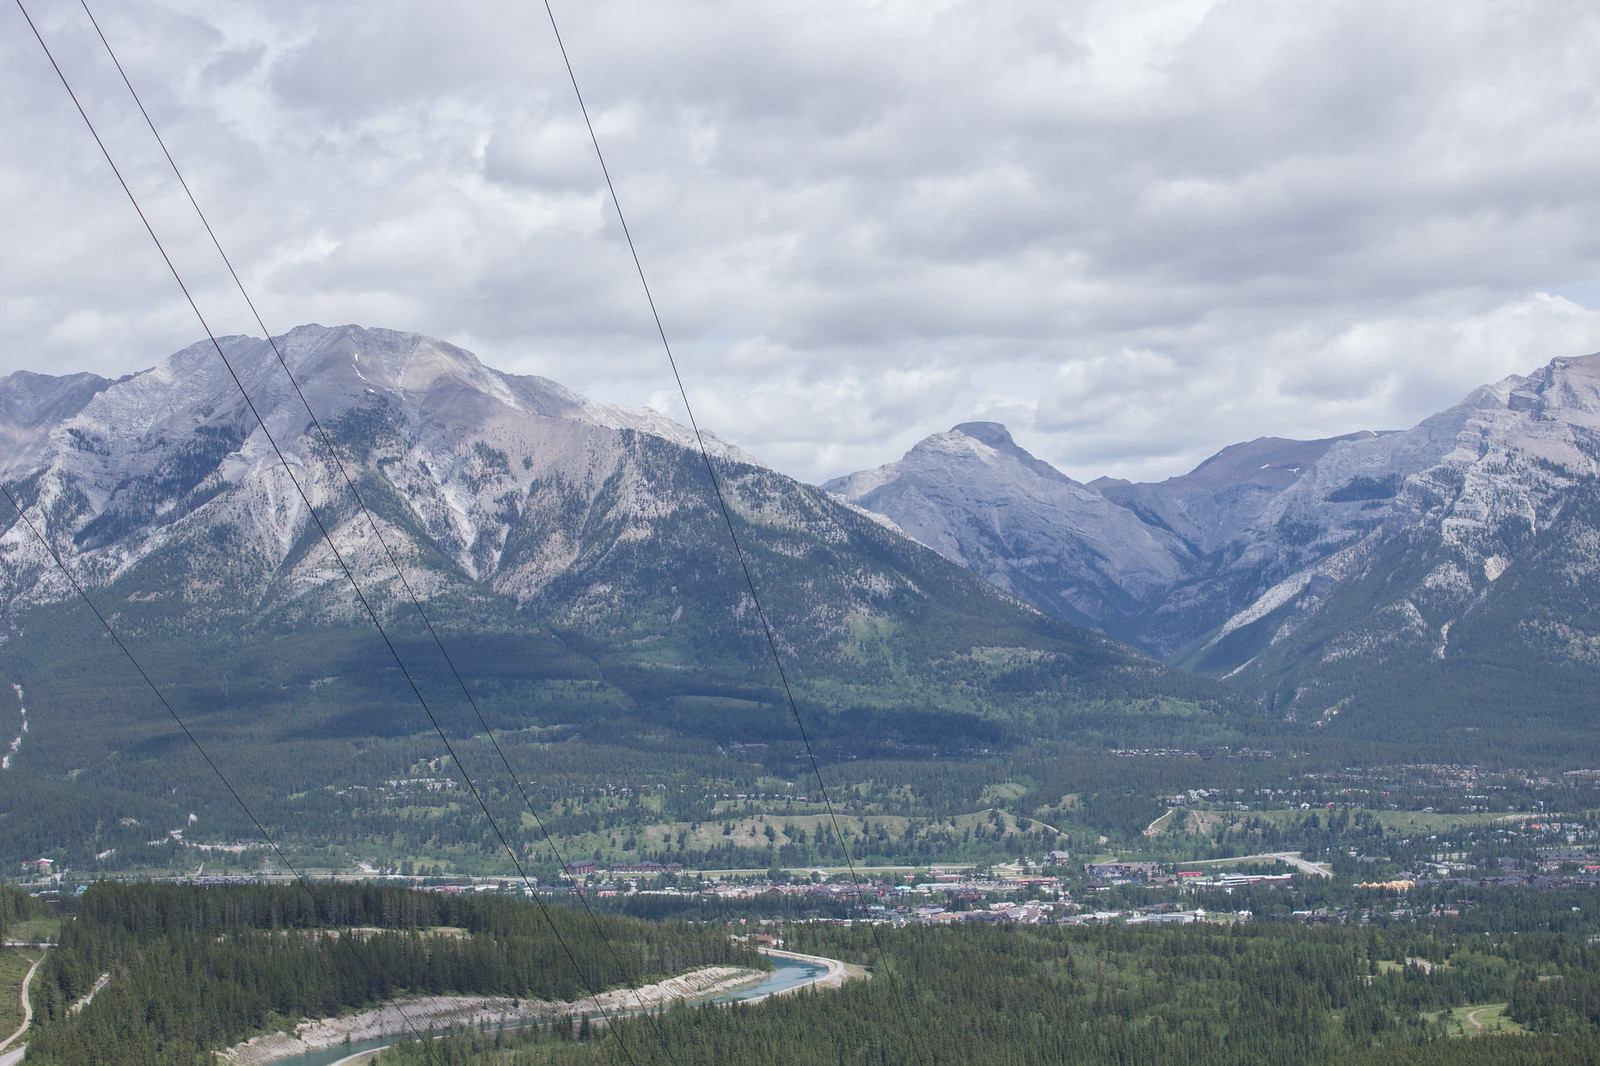 View over Canmore and Bow Valley from Grassi Lakes